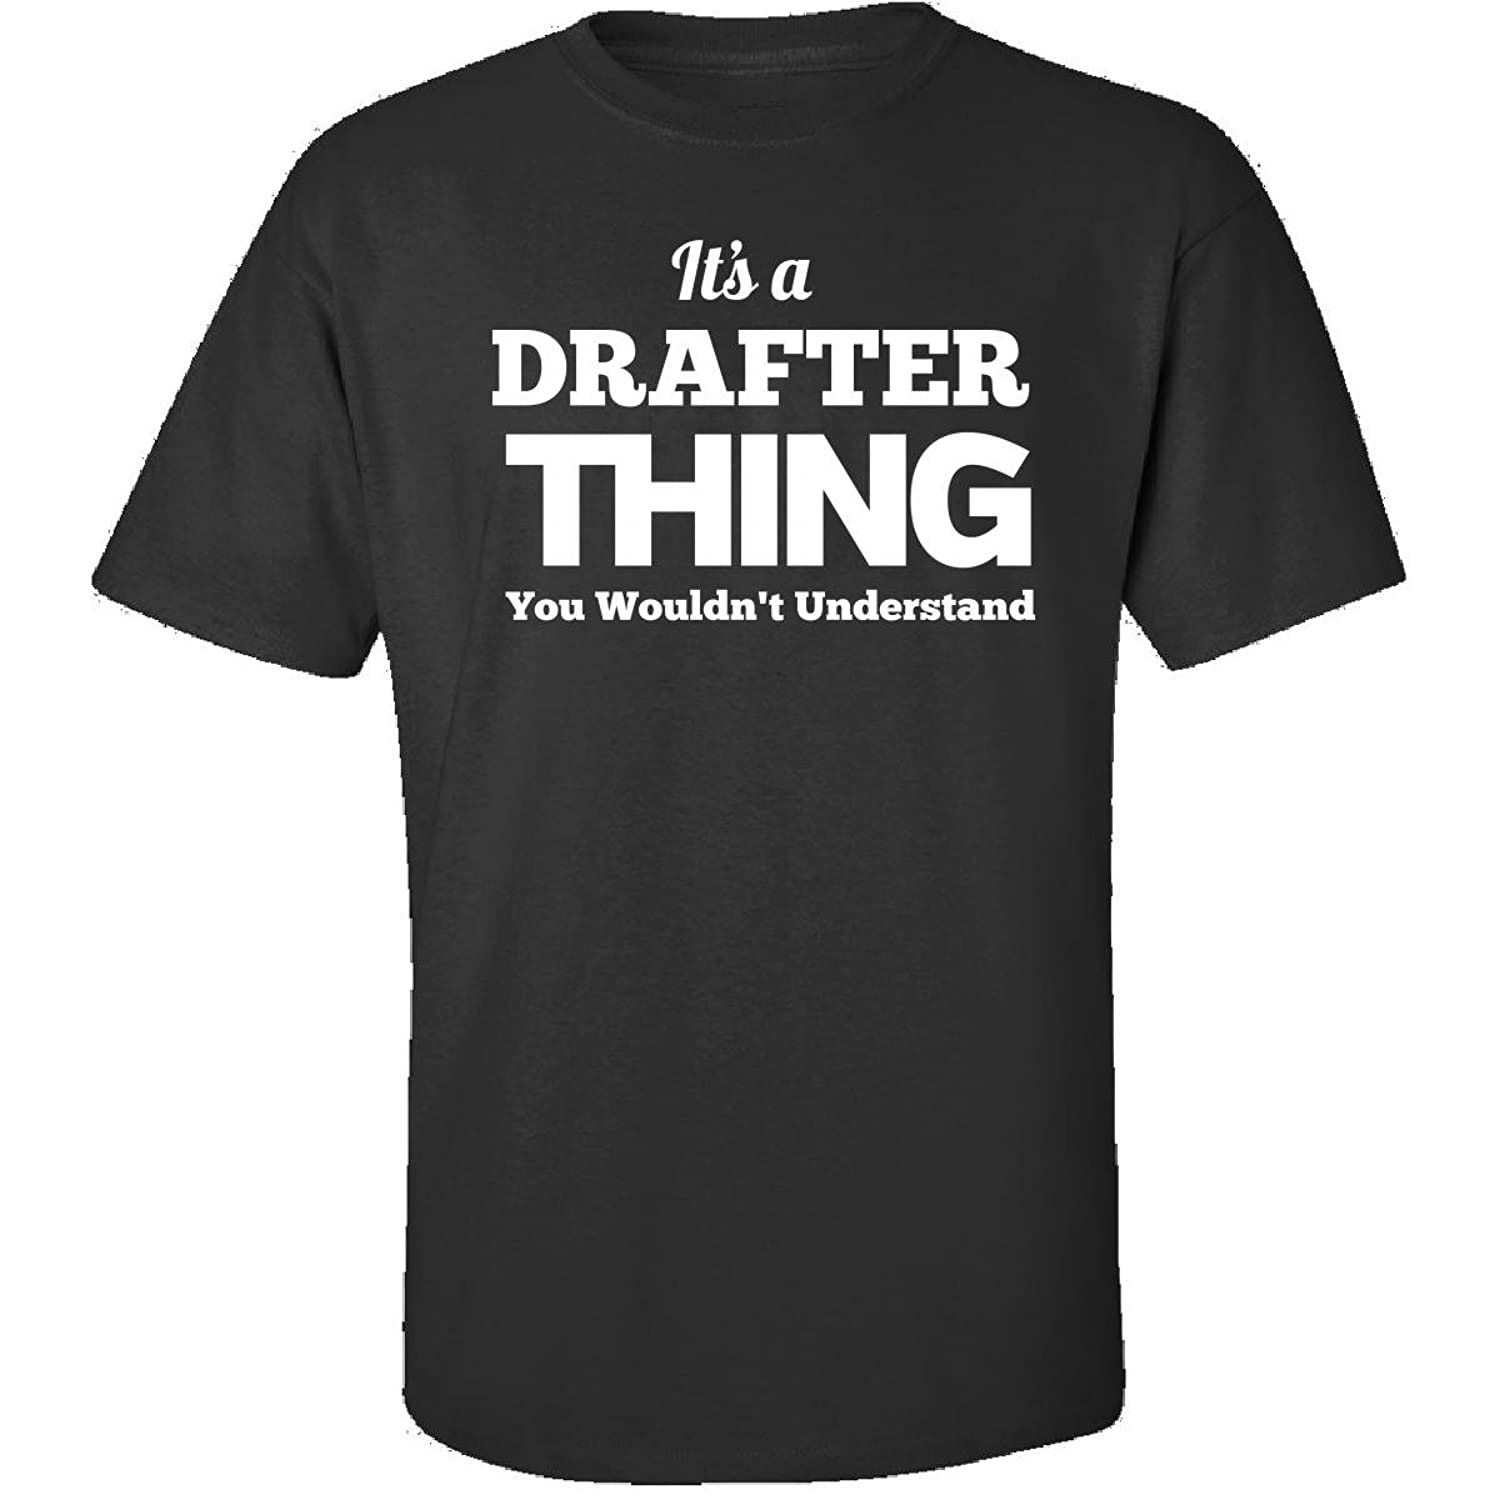 Its A Drafter Thing You Wouldnt Understand - Adult Shirt